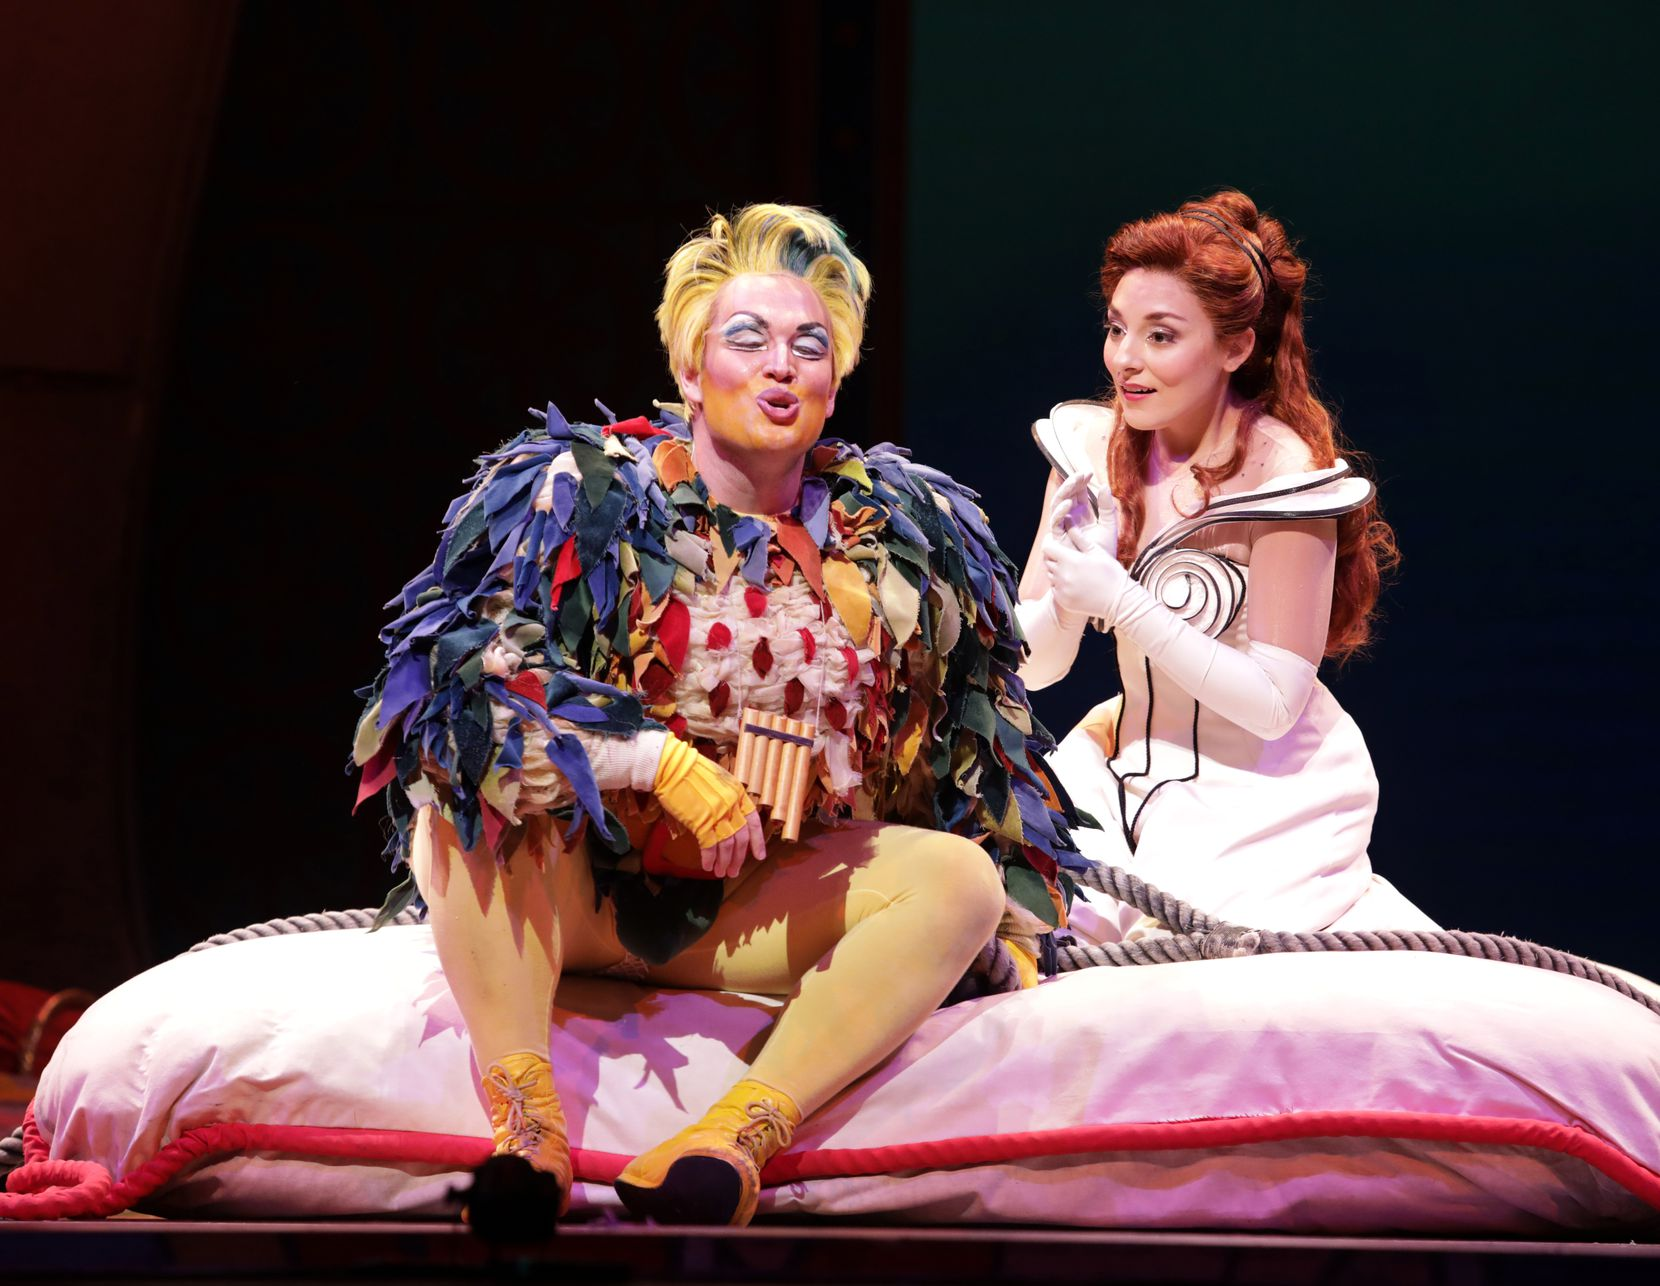 Papageno, played by Sean Michael Plumb (left) and Pamina, played by Andrea Carroll, perform during a dress rehearsal of 'The Magic Flute' at Winspear Opera House in Dallas on Oct. 15, 2019.